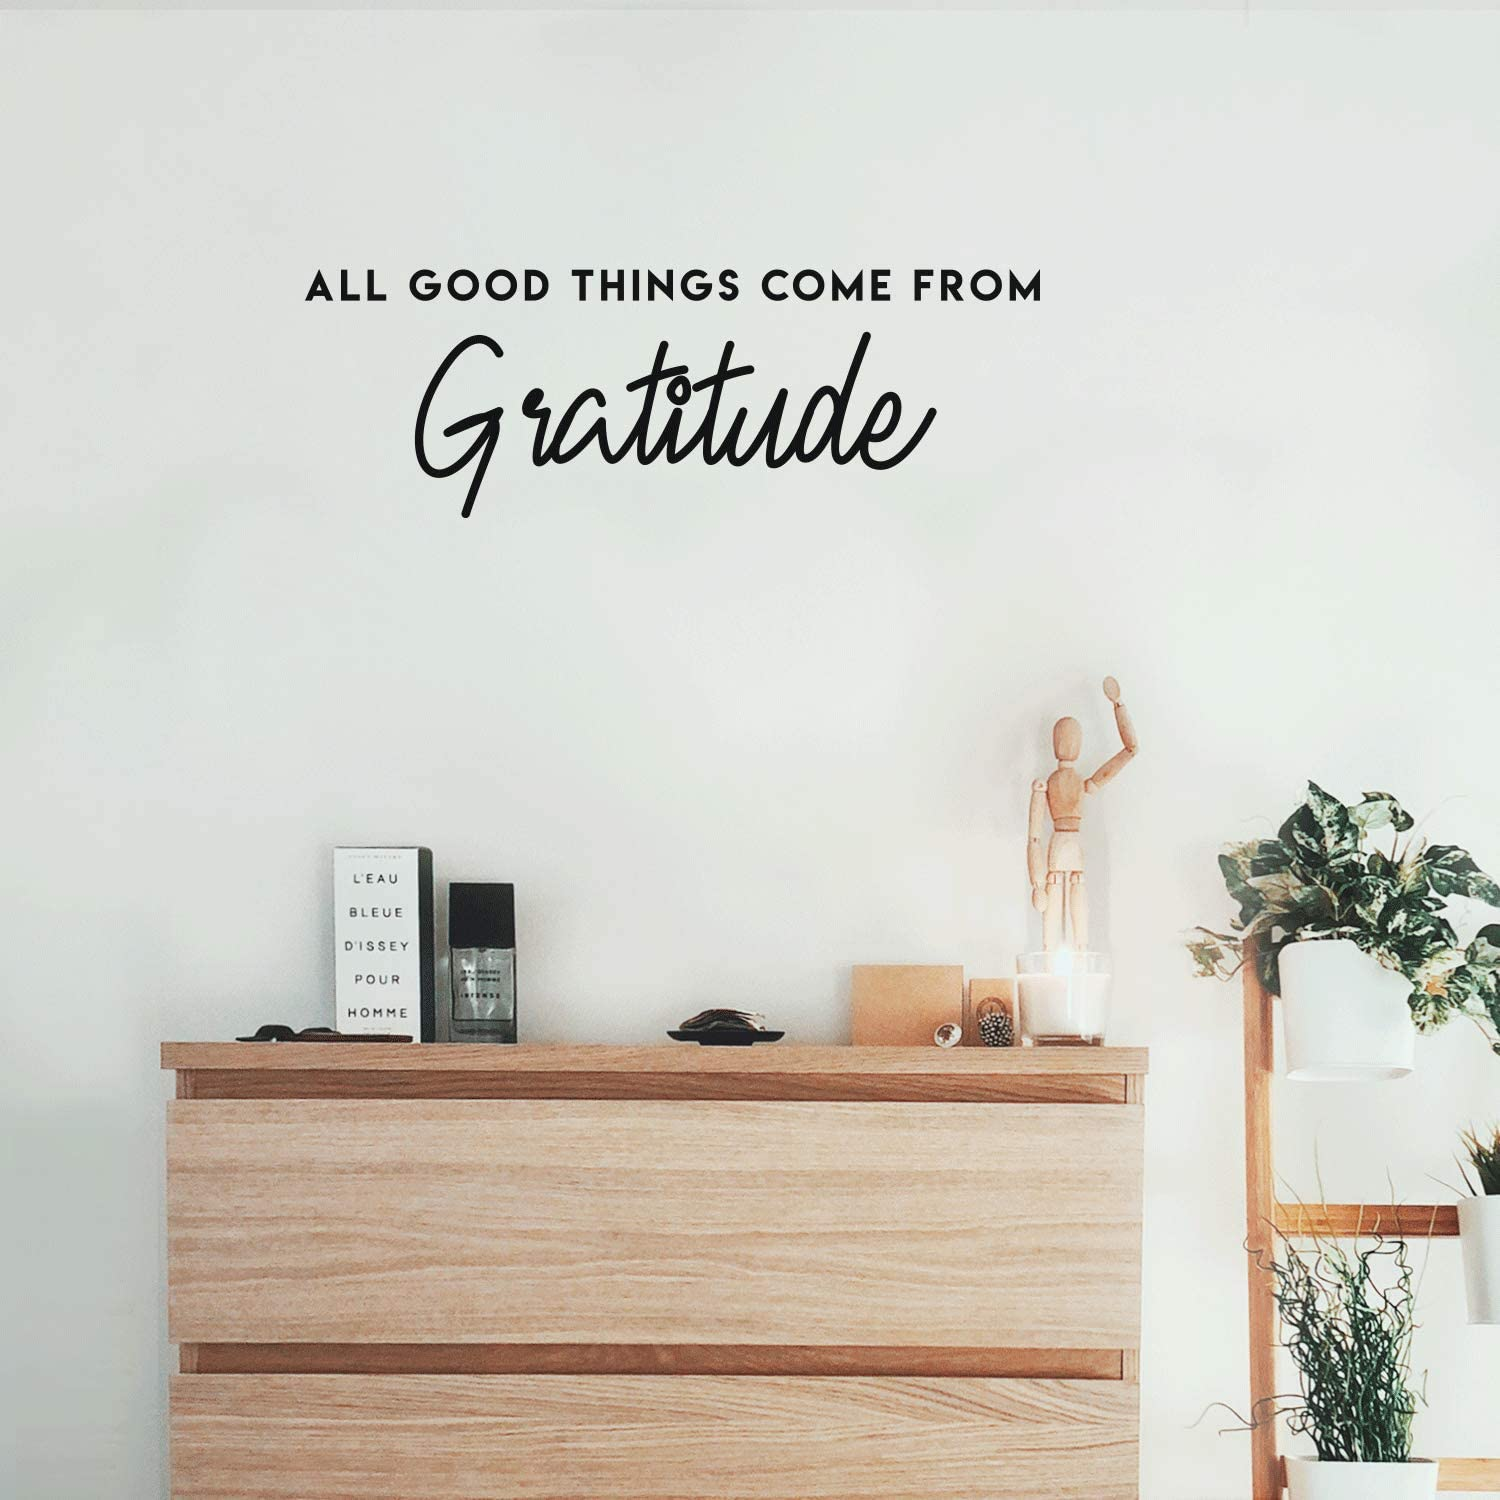 """Vinyl Wall Art Decal - All Good Things Come from Gratitude - 10"""" x 29.5"""" - Modern Inspirational Gratefulness Quote for Home Bedroom Living Room Office Workplace School Decoration Sticker (Black)"""